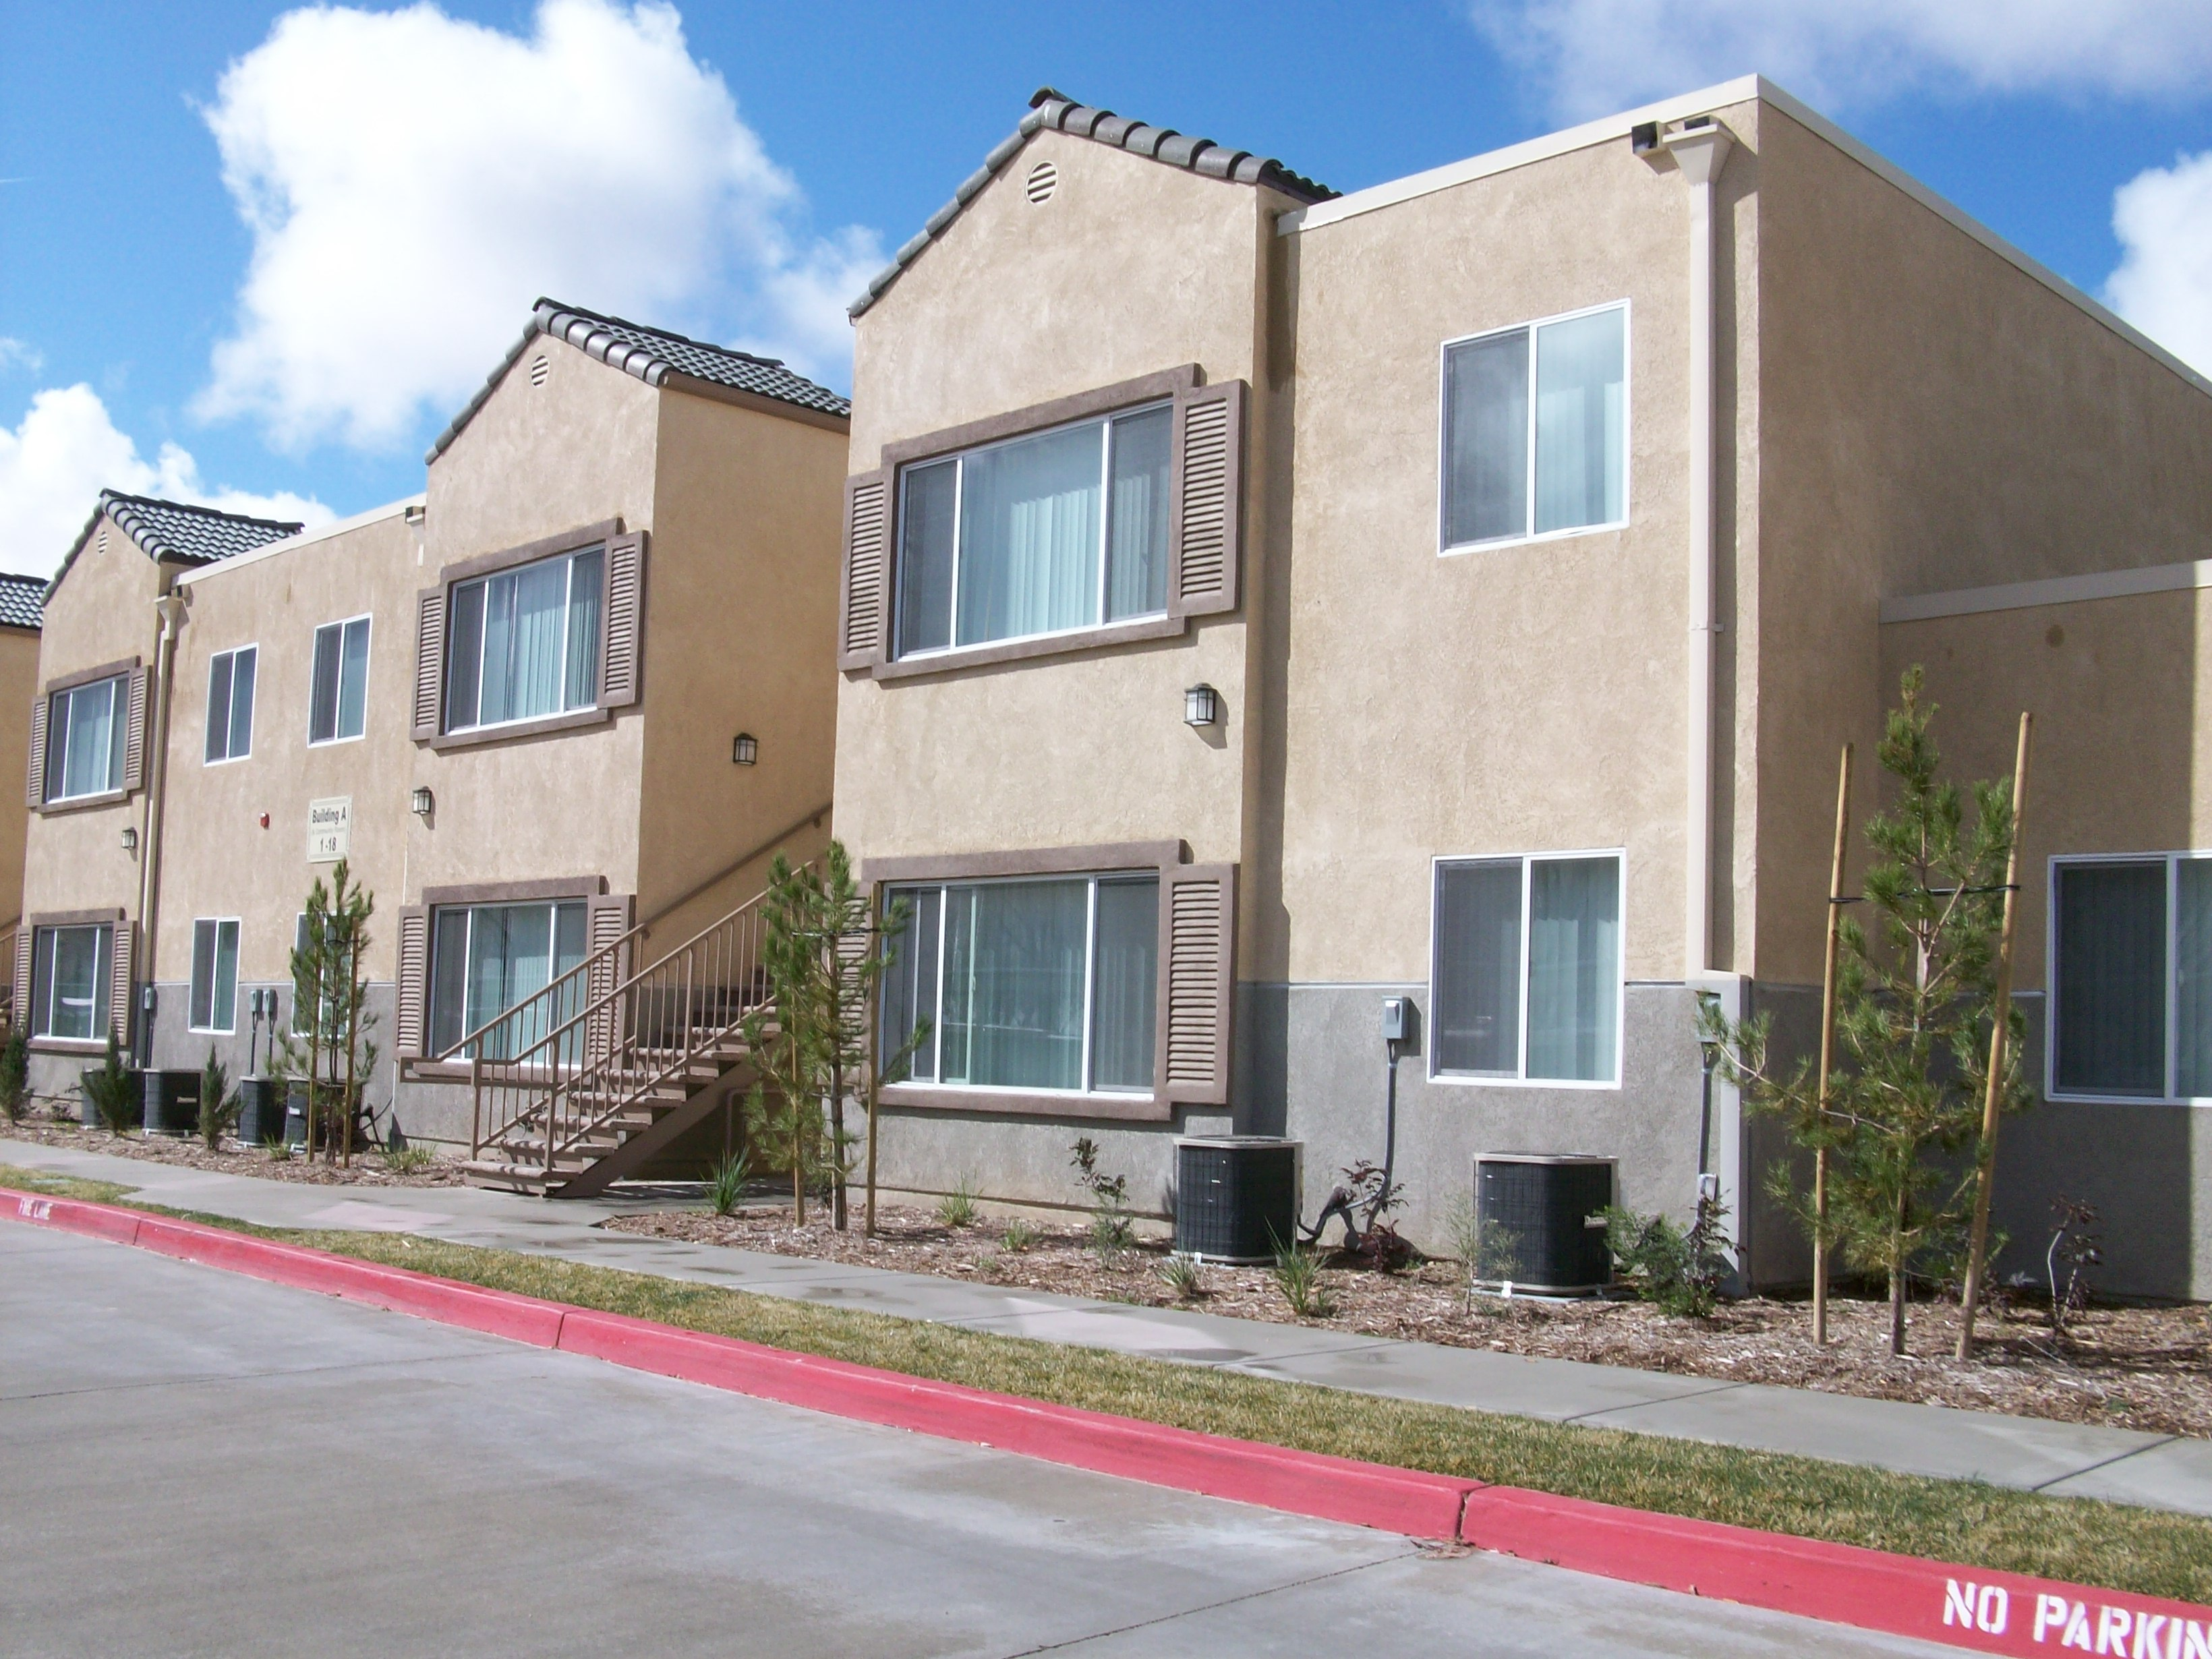 Rosamond Gateway Village Apartments